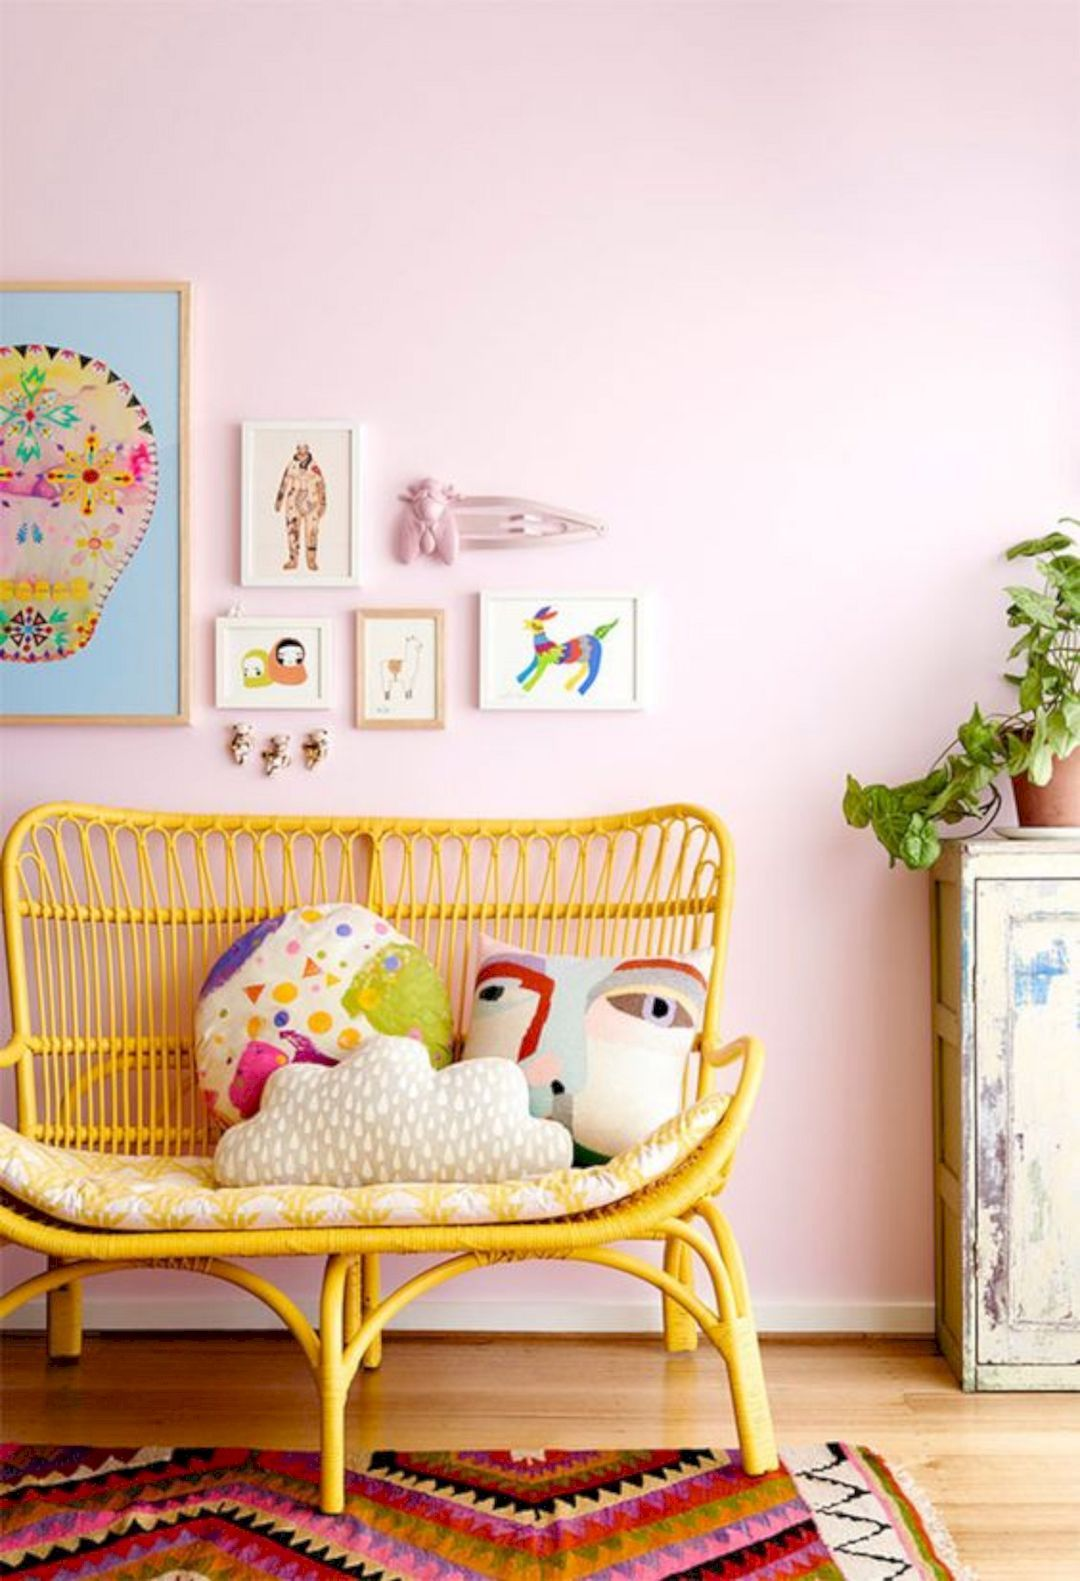 15 Painted Wicker Furniture Ideas to Adorn Your Home With ...